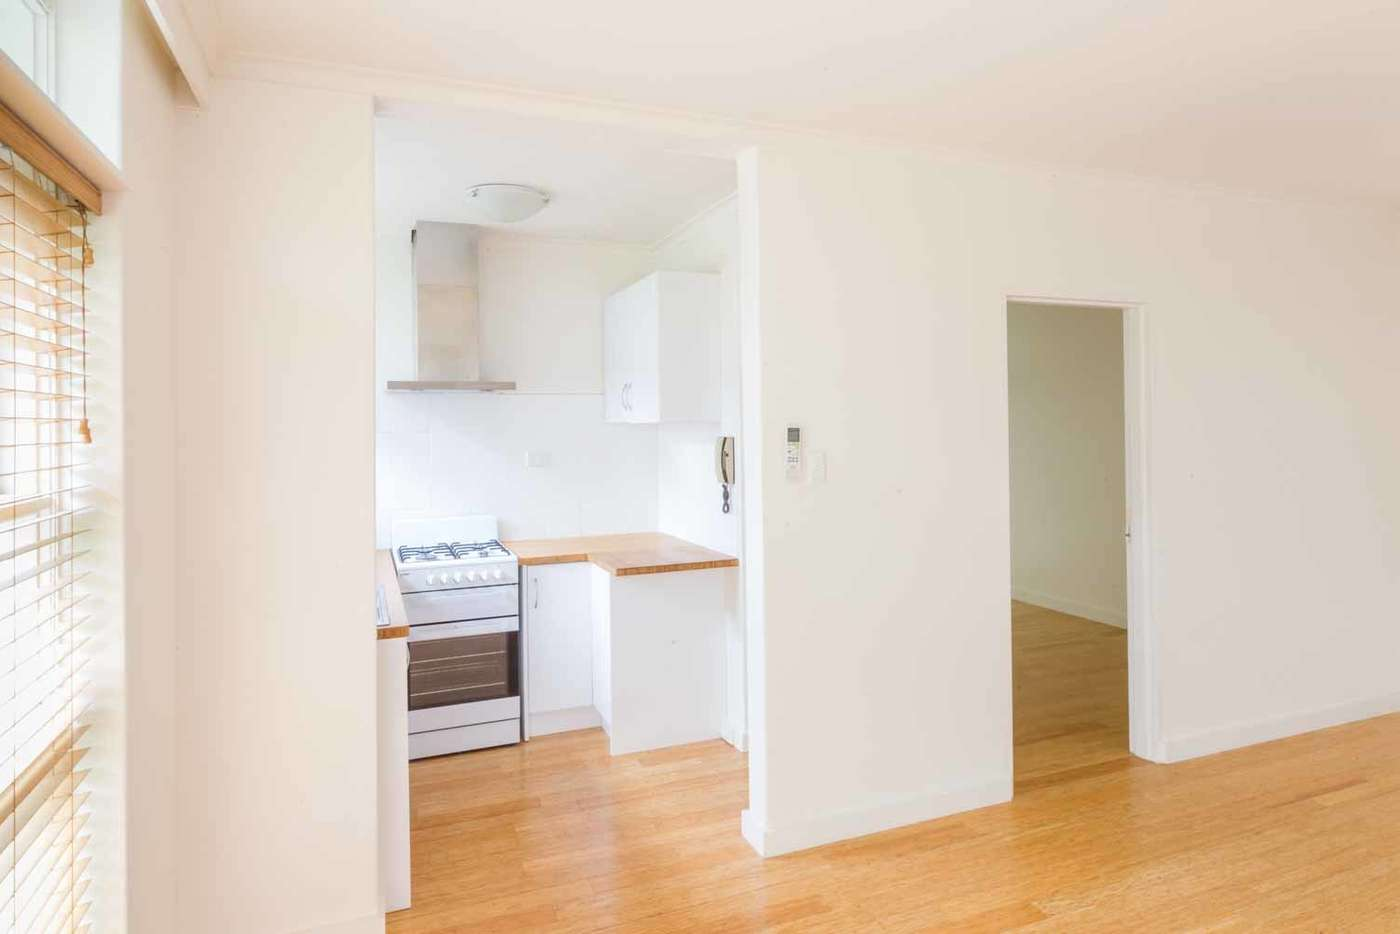 Sixth view of Homely apartment listing, 7/19 Chapman Street, North Melbourne VIC 3051